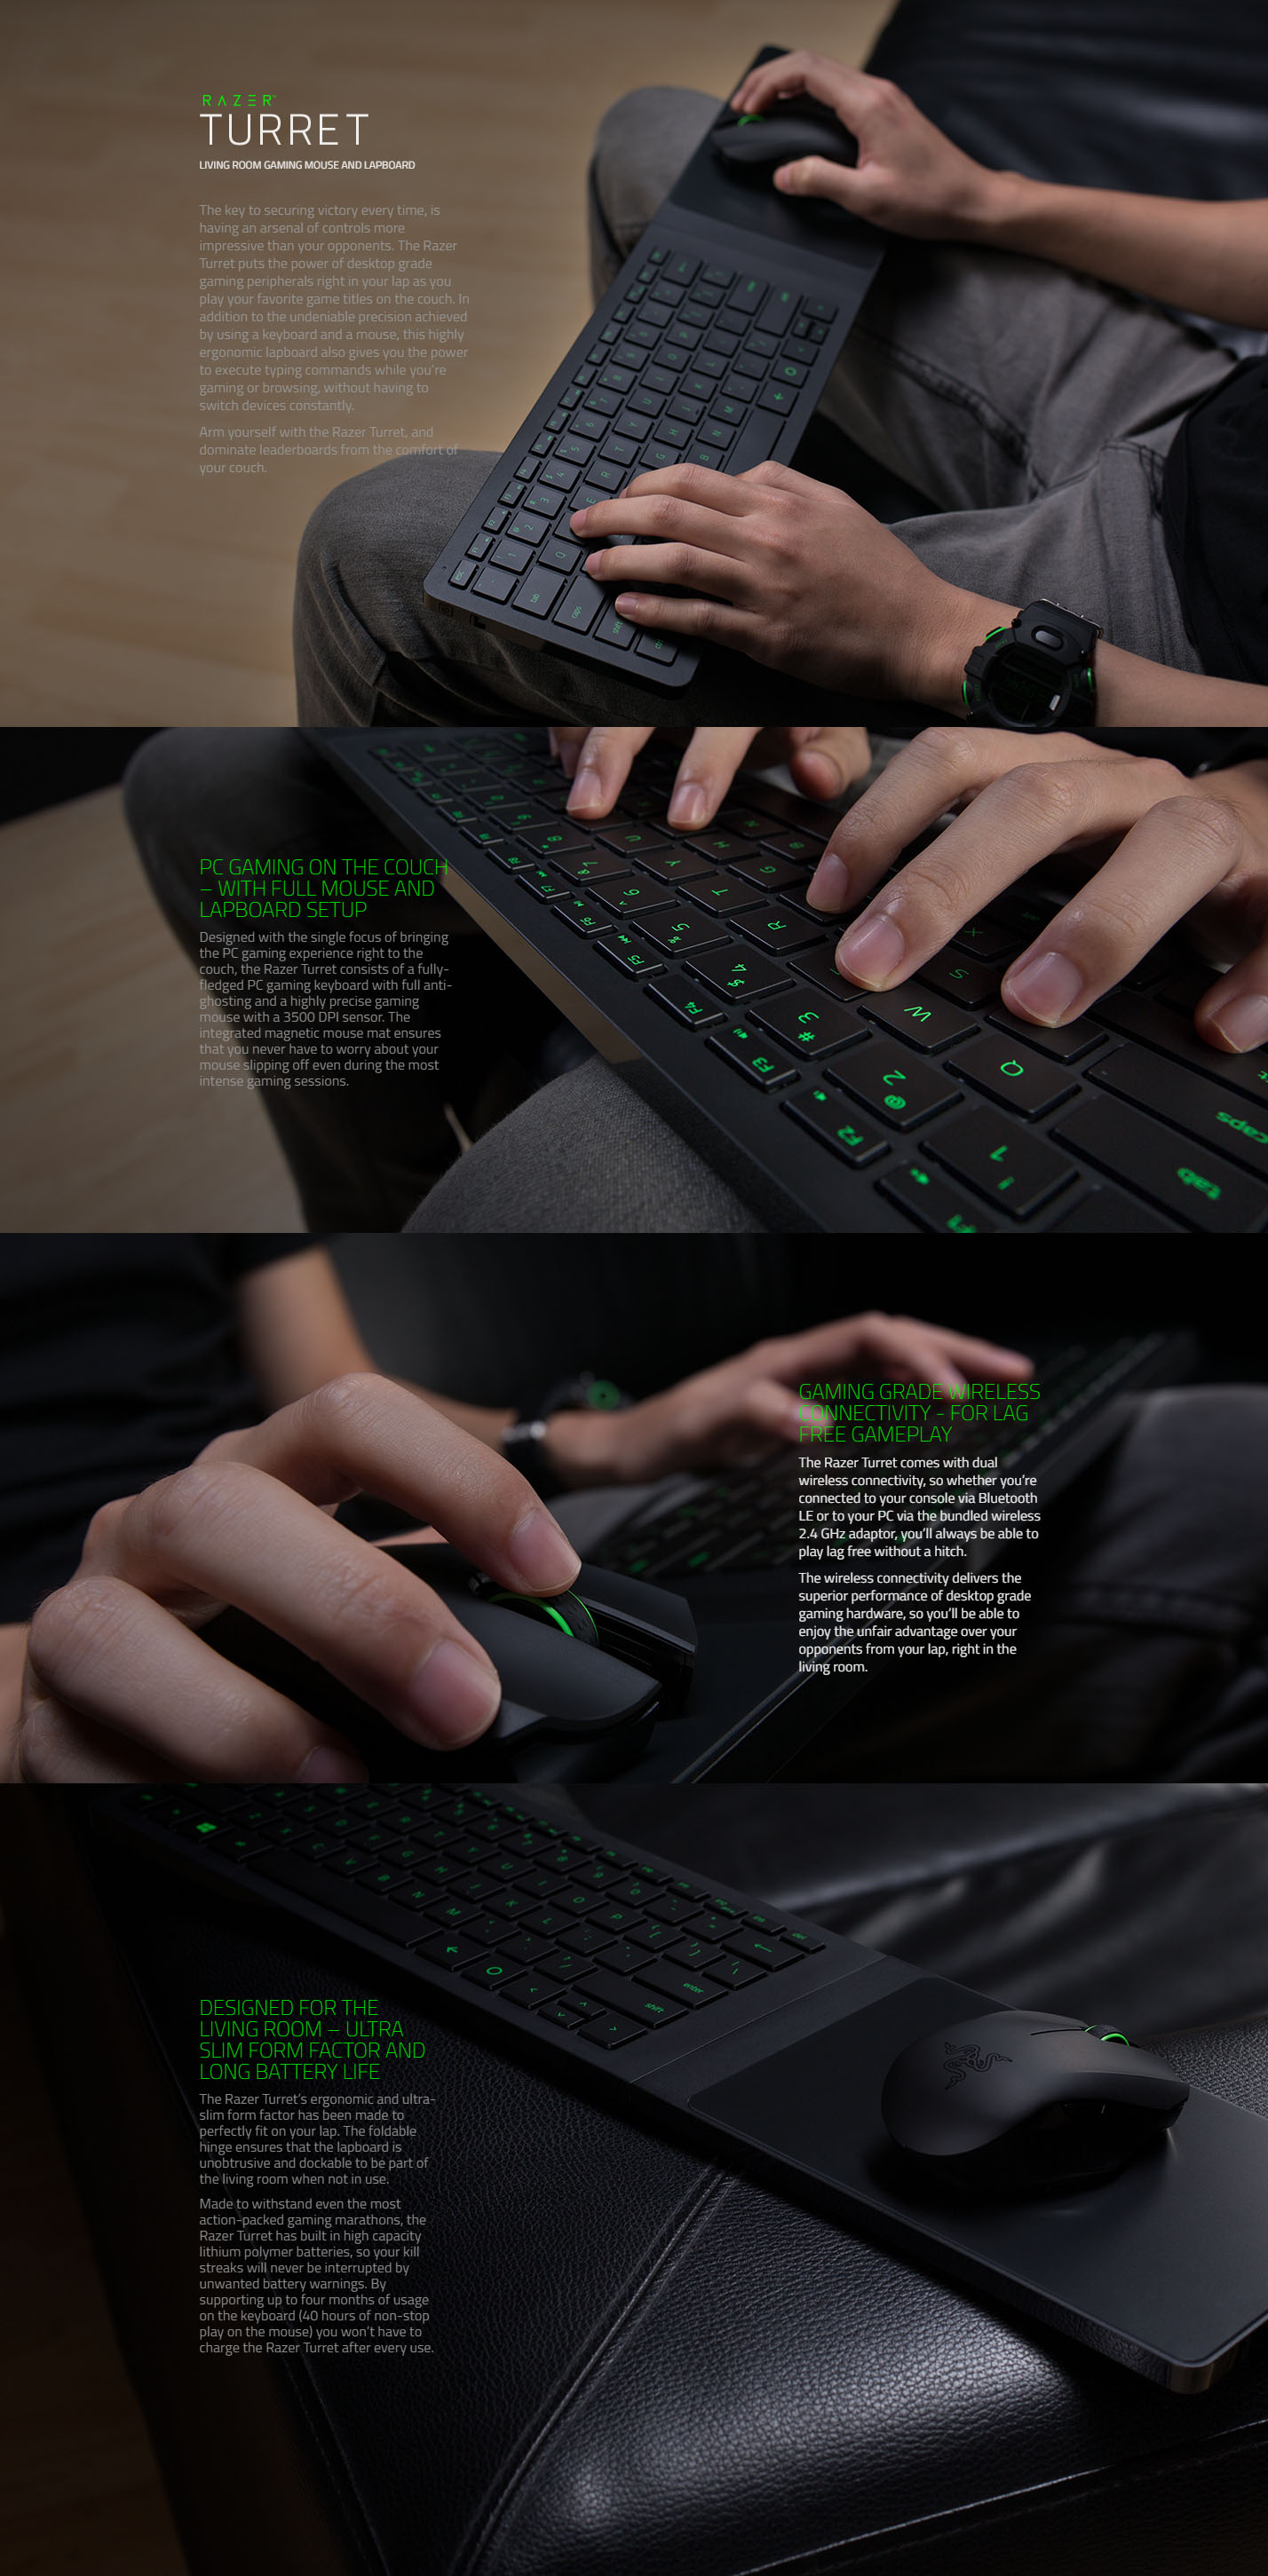 Razer Turret Living Room Gaming Mouse And Lapboard RZ84 01330100